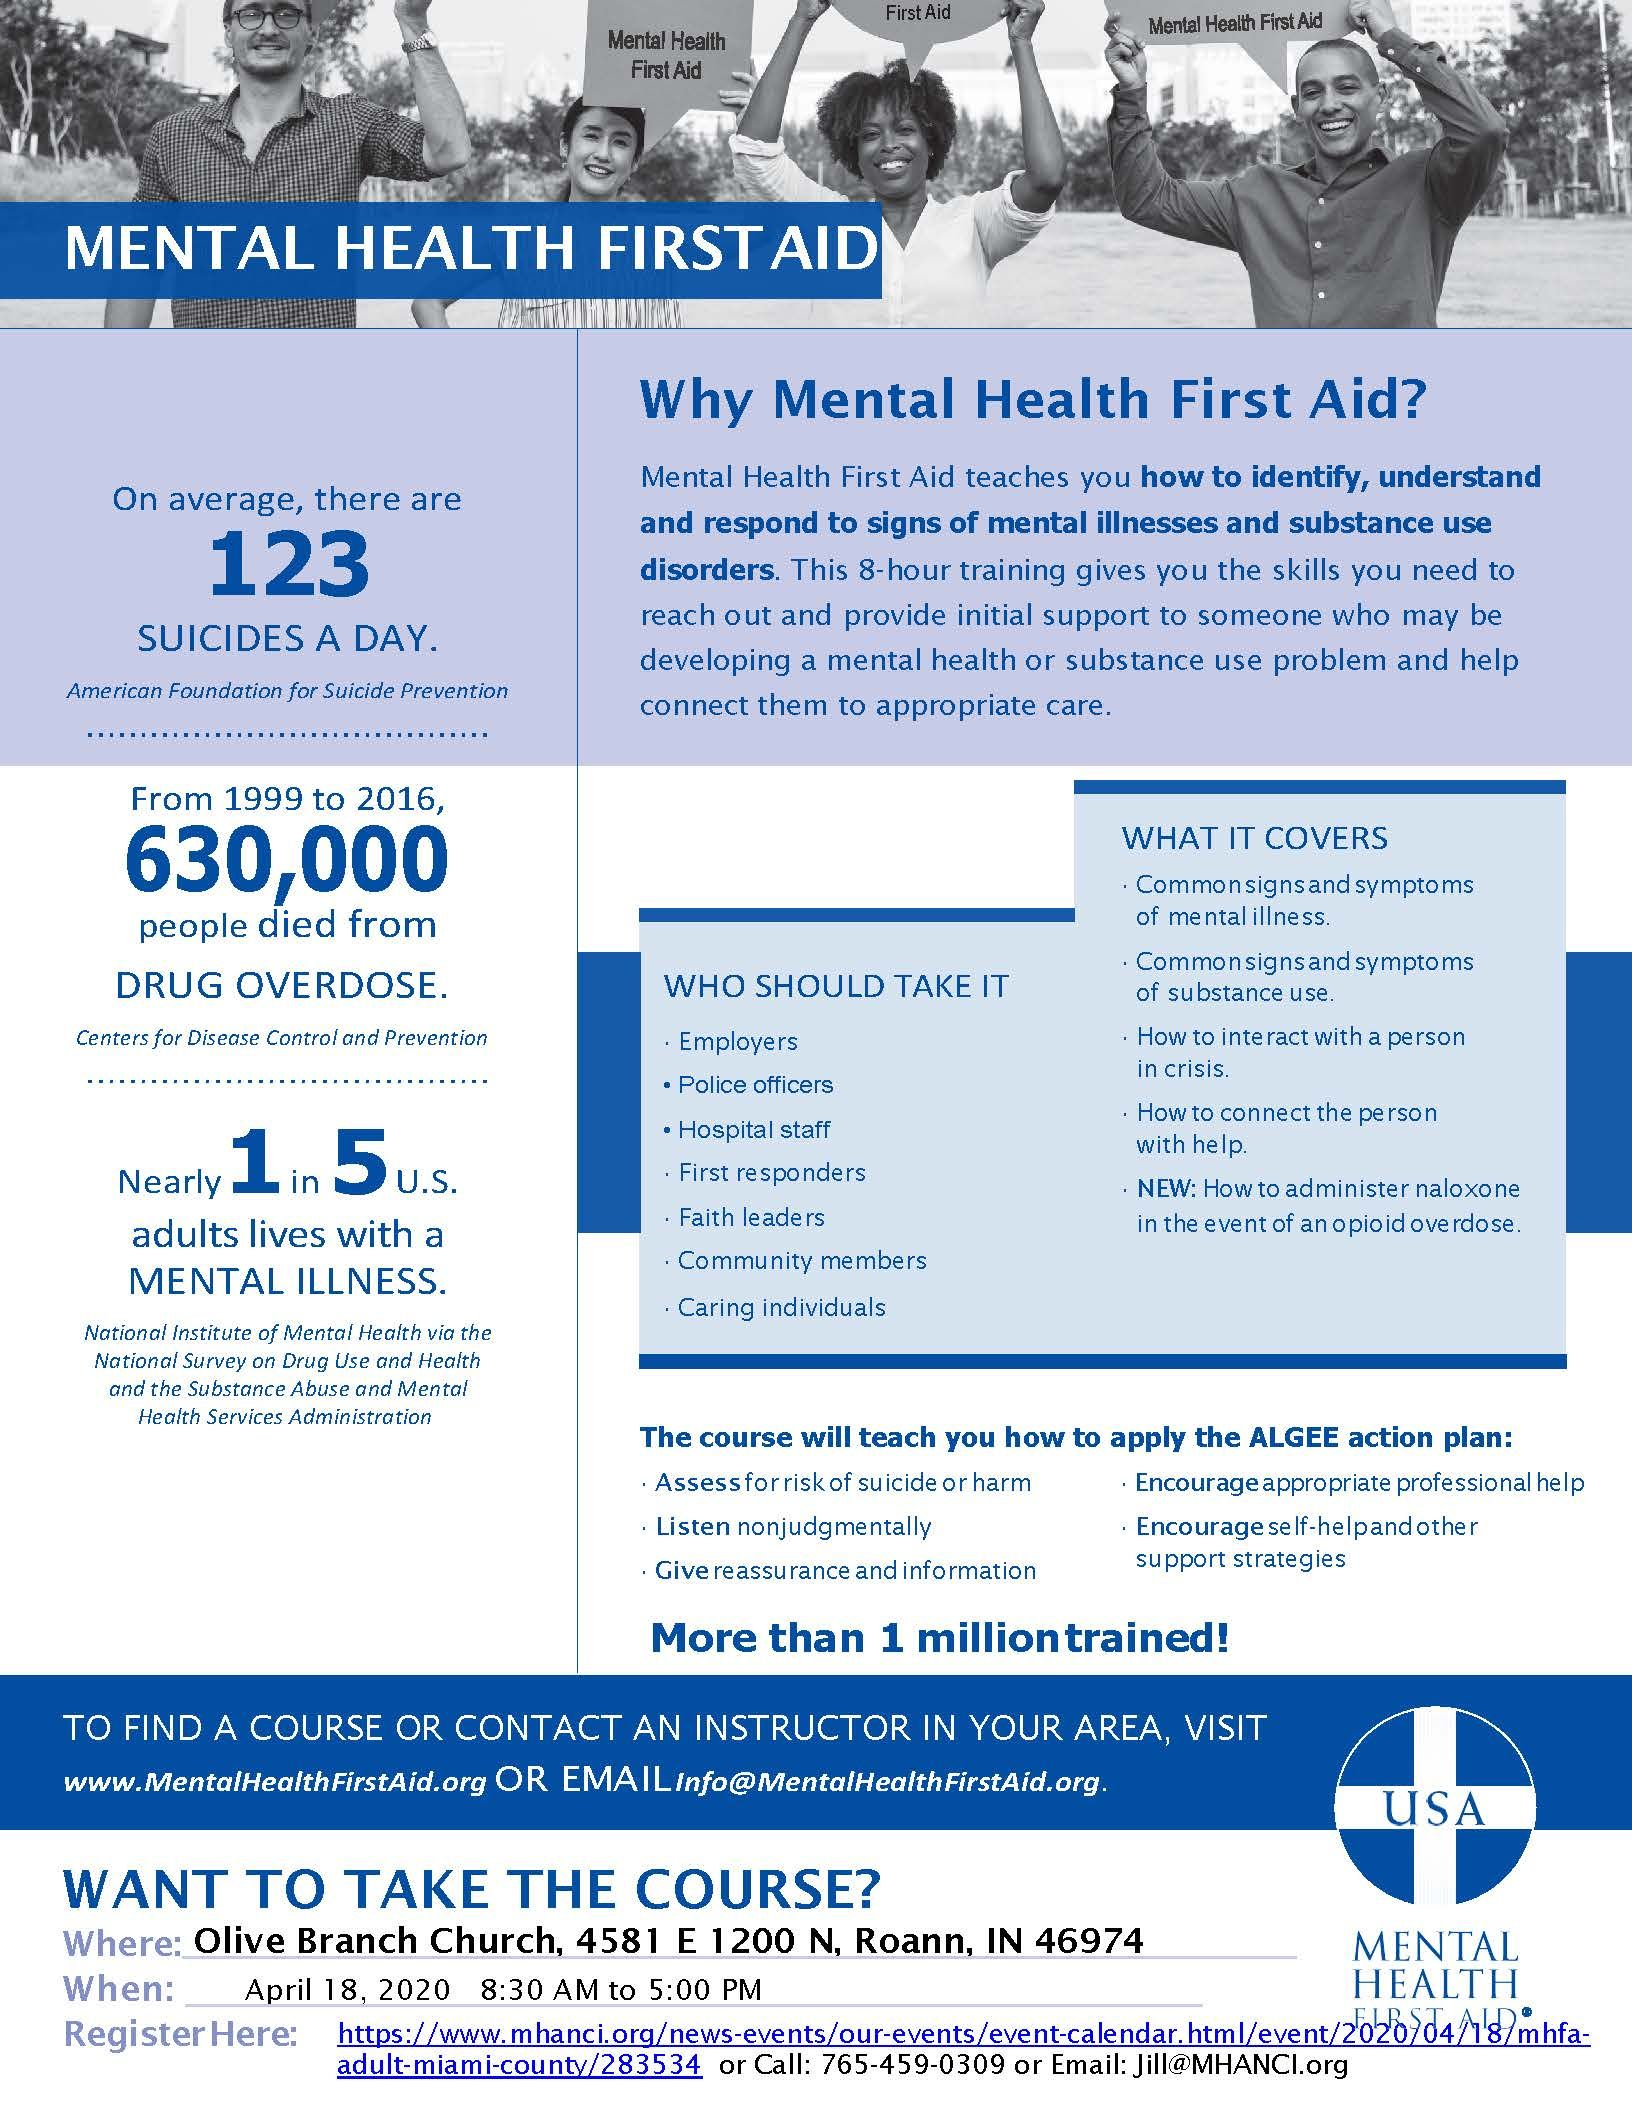 Mental Health First Aid Course - Miami County